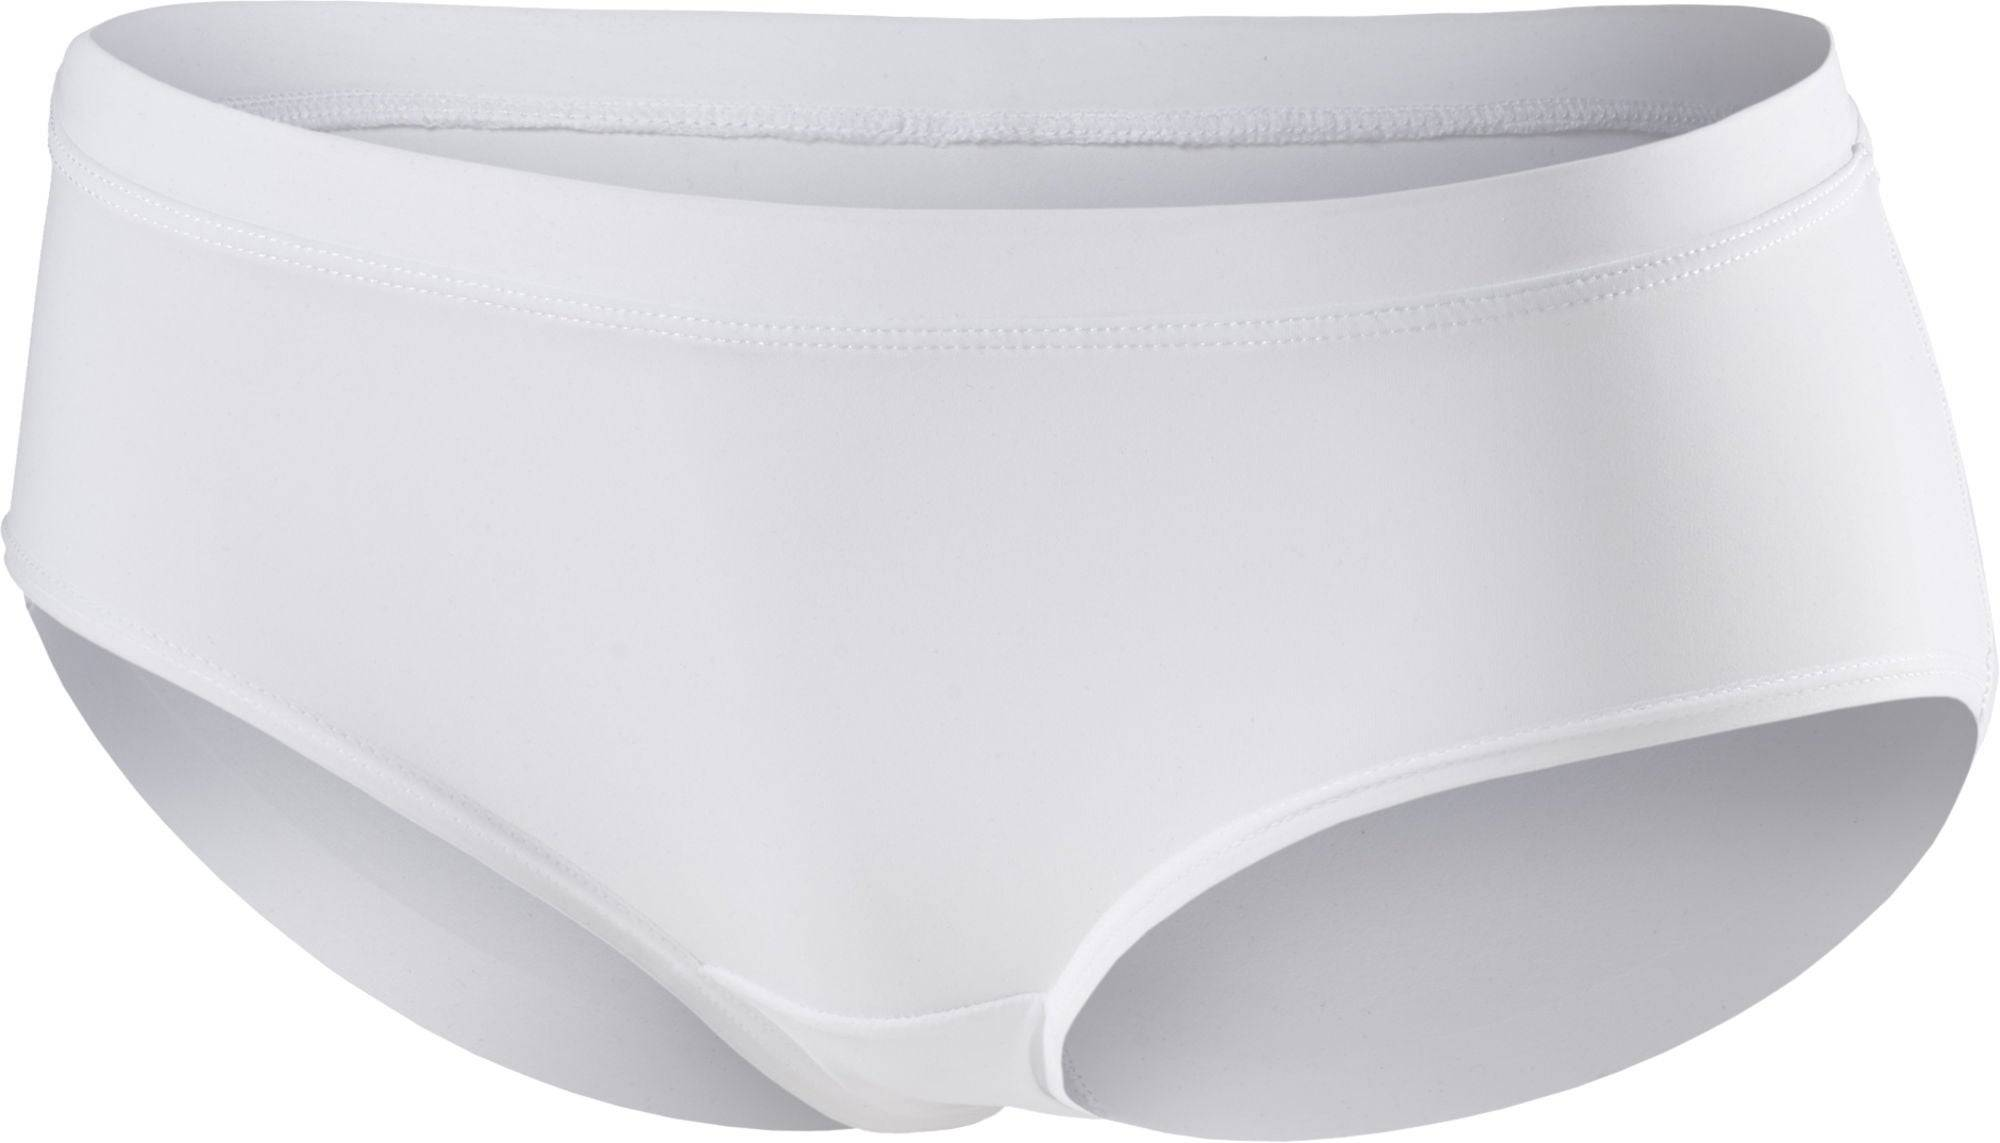 Pierre Robert Hipster Truse 5-pack, White M